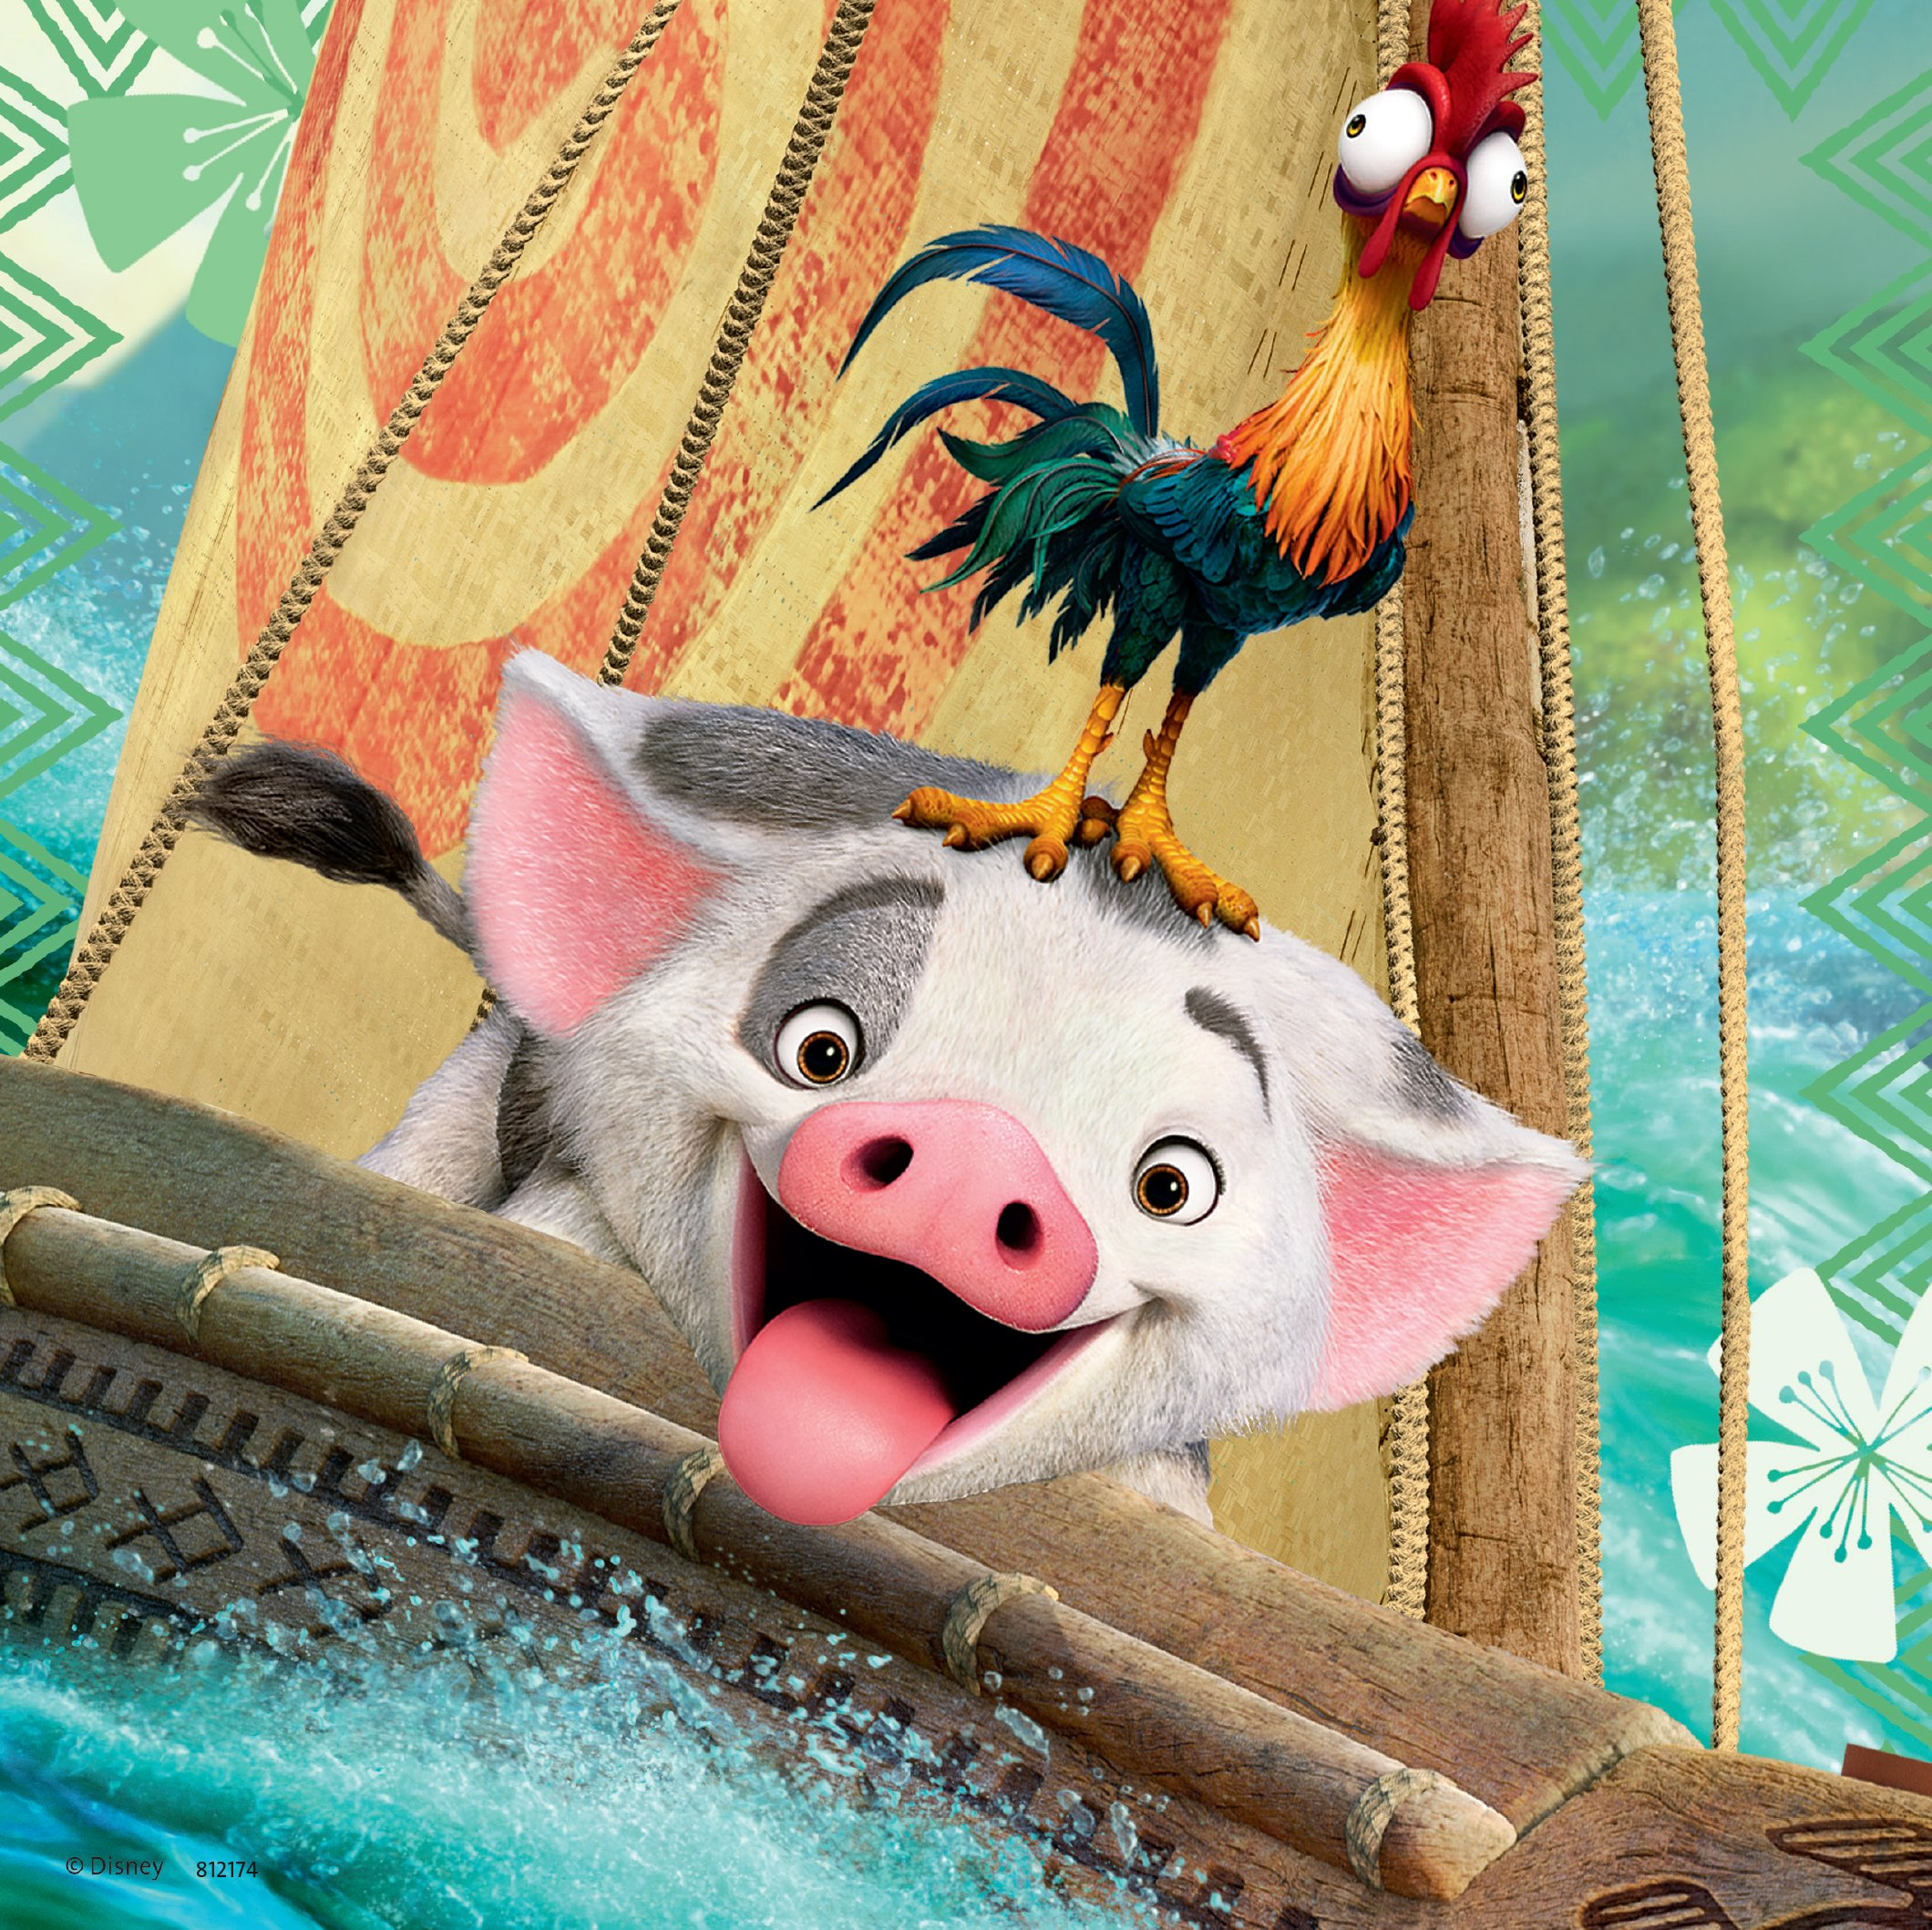 Ravensburger Disney Moana Born To Voyage 49 Piece Jigsaw Puzzle for Kids – Every Piece is Unique, Pieces Fit Together Perfectly by Ravensburger (Image #4)